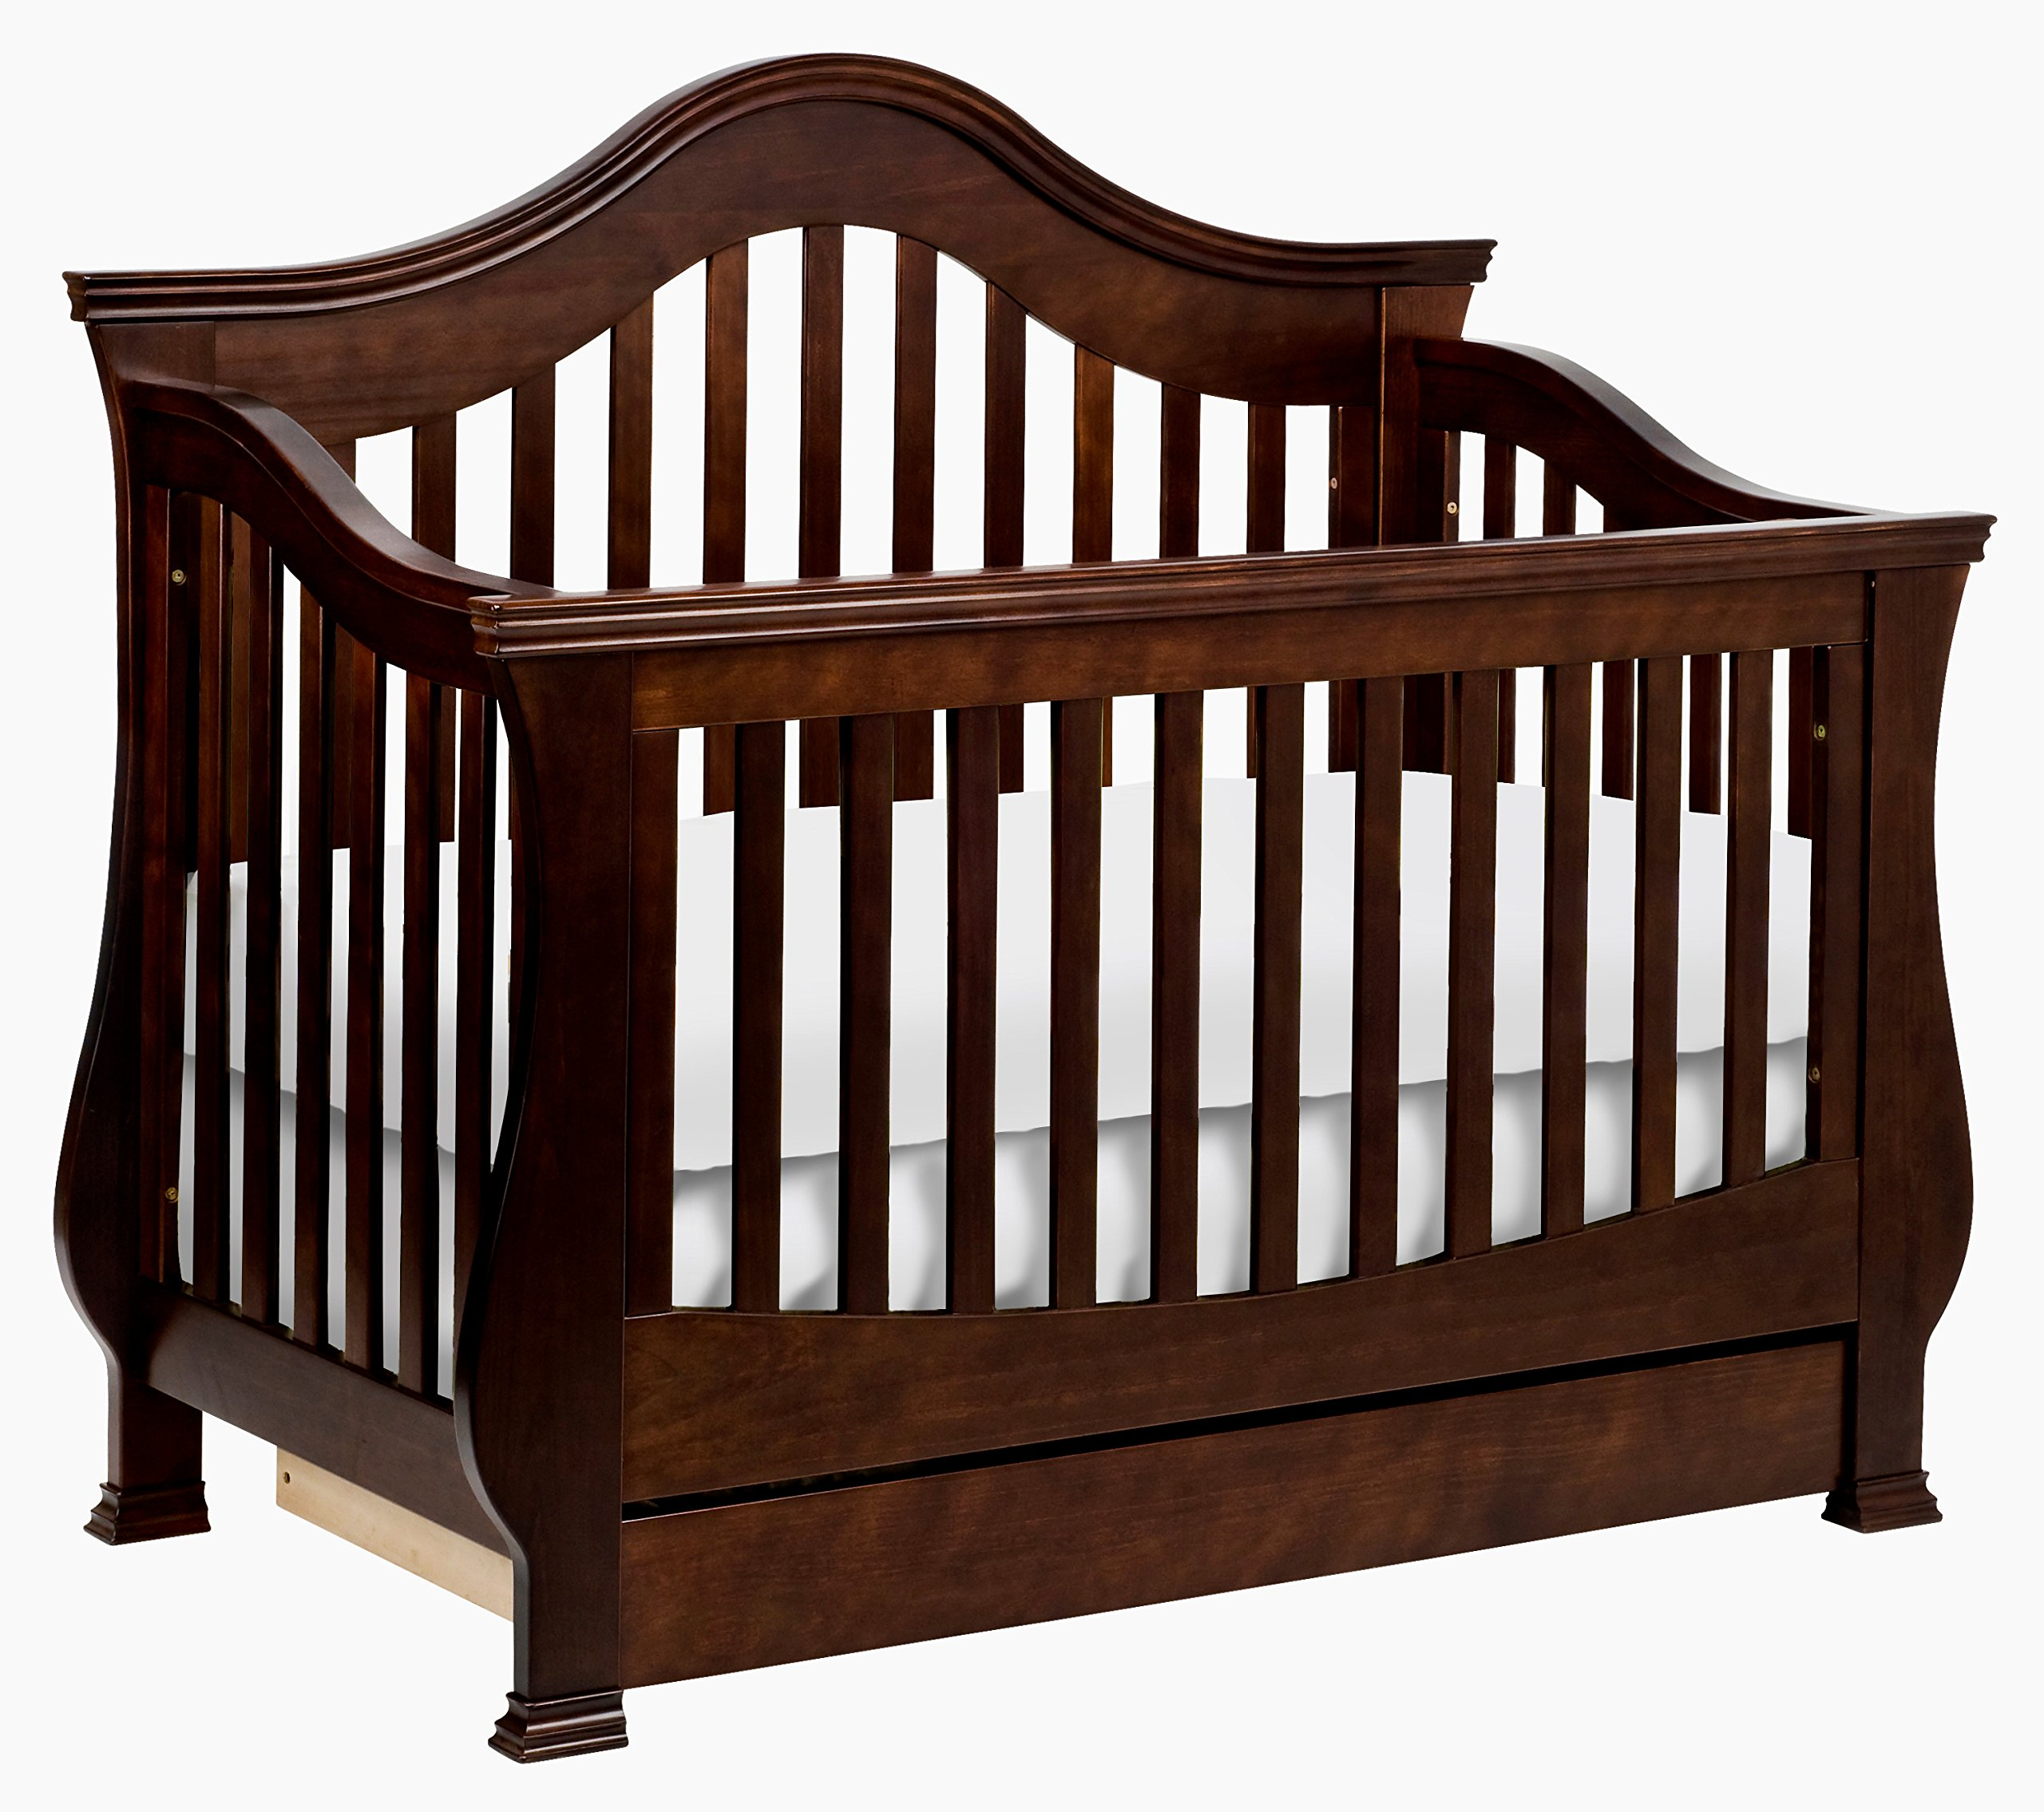 Million Dollar Baby Classic Ashbury 4-in-1 Convertible Crib with Toddler Bed Conversion Kit, Espresso by Million Dollar Baby Classic